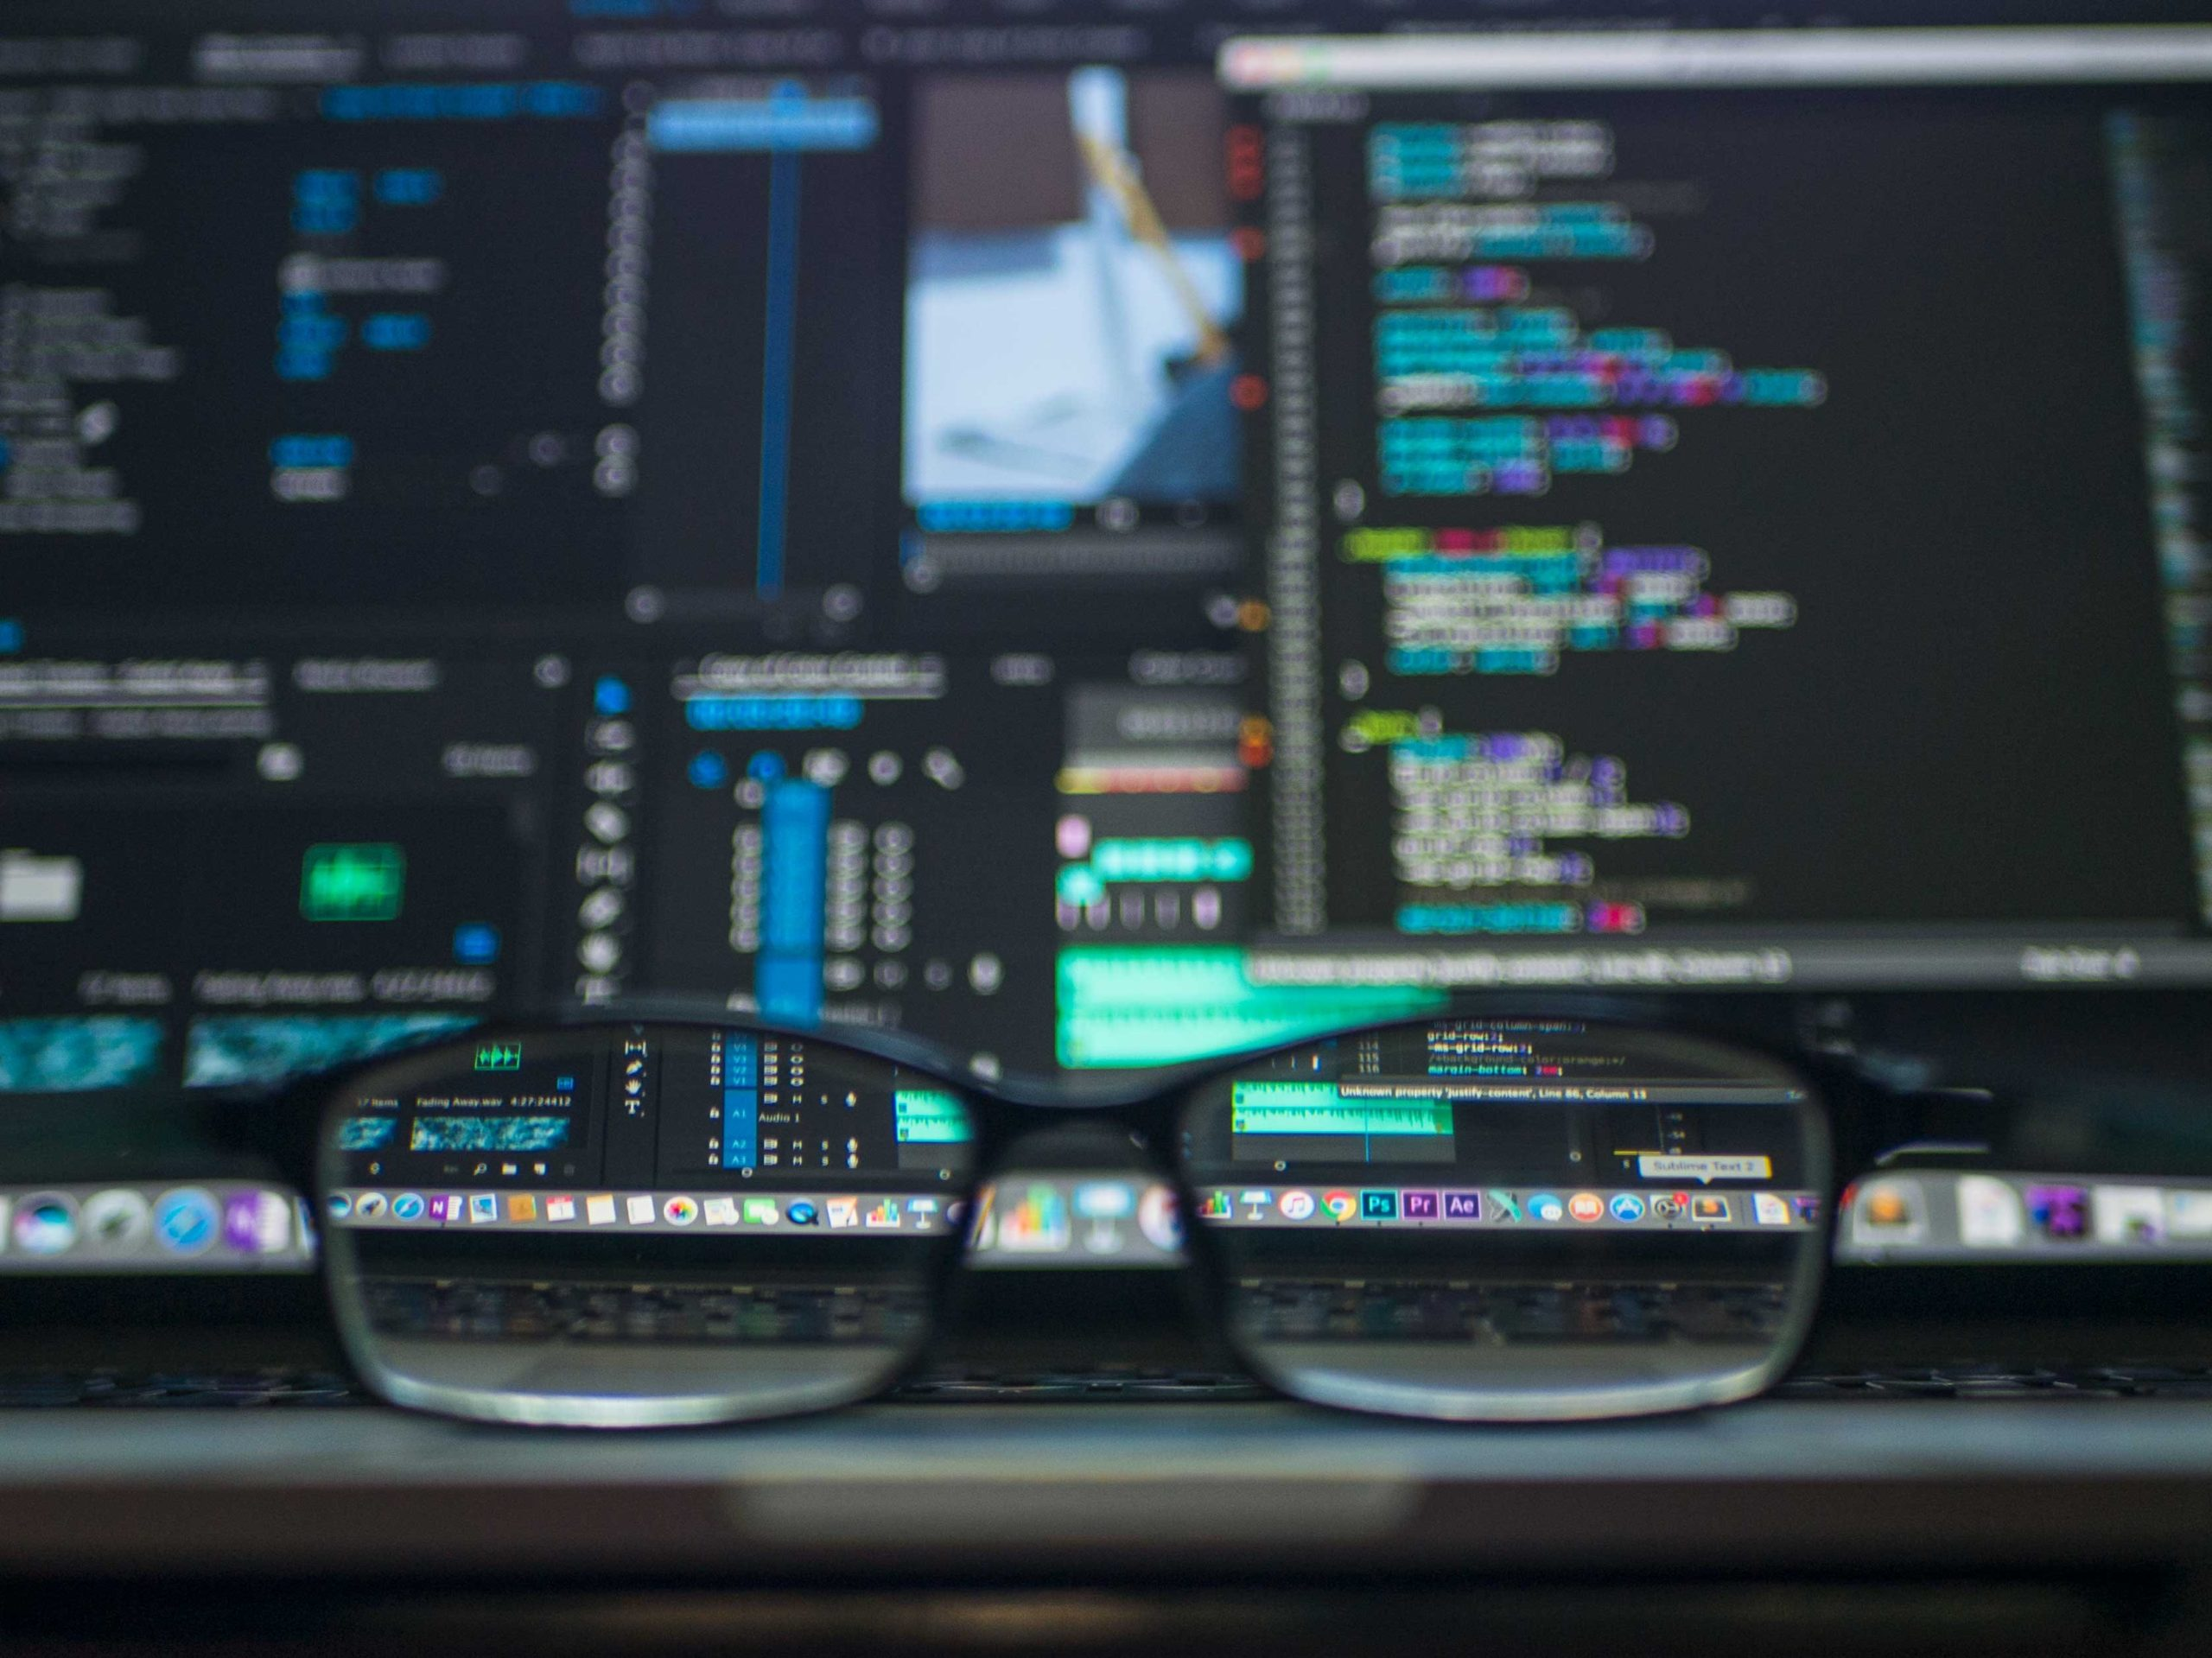 Eclipse   The Basic Java Programming Course